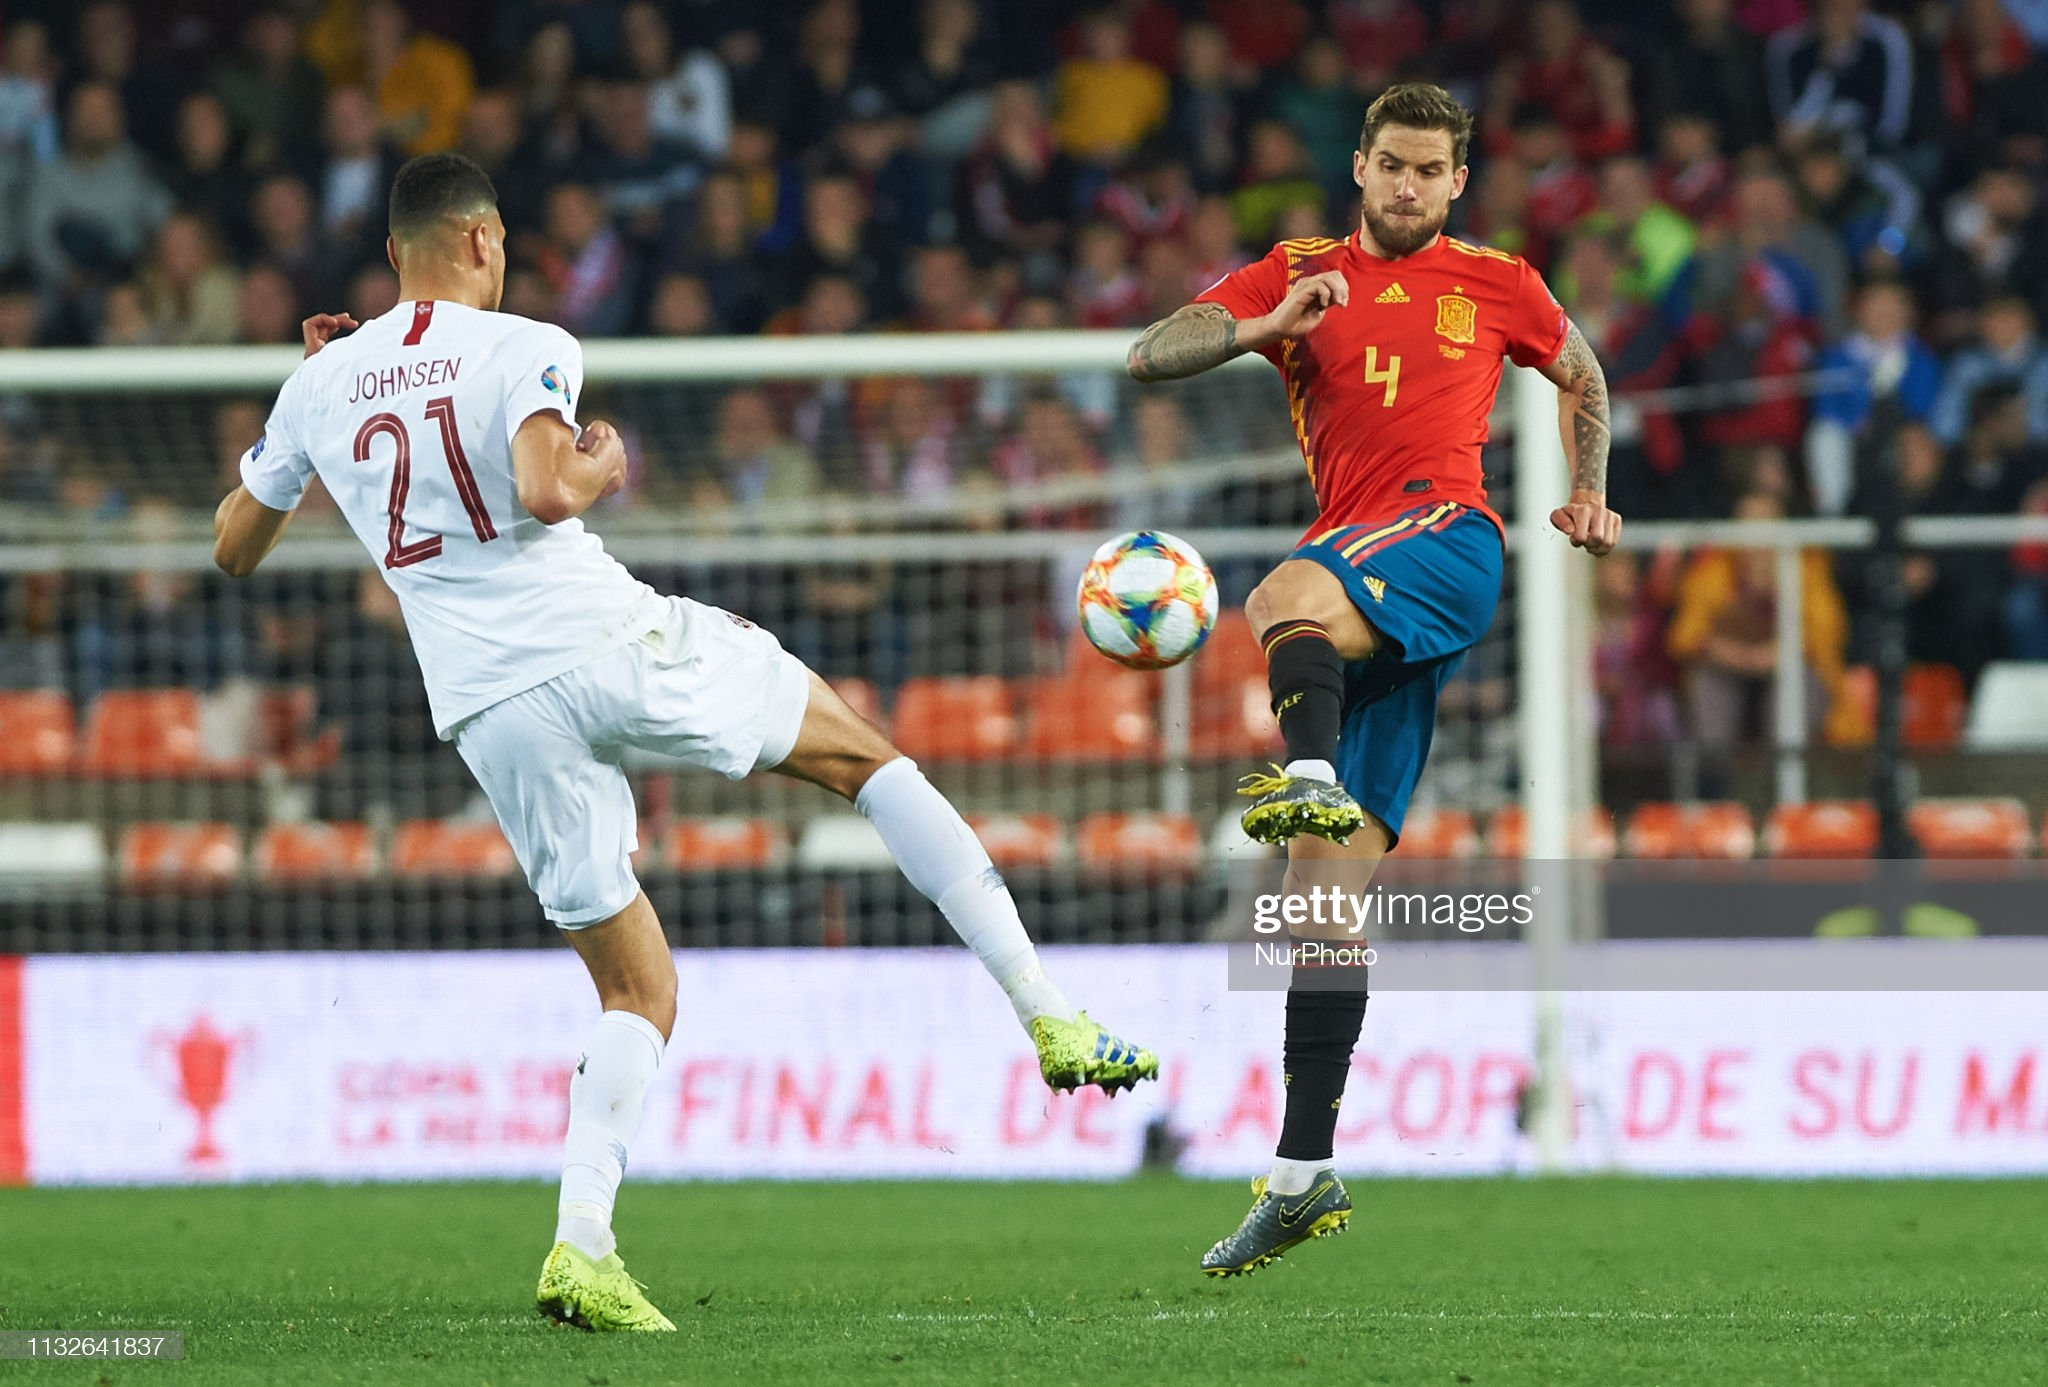 Norway v Spain preview, prediction and odds